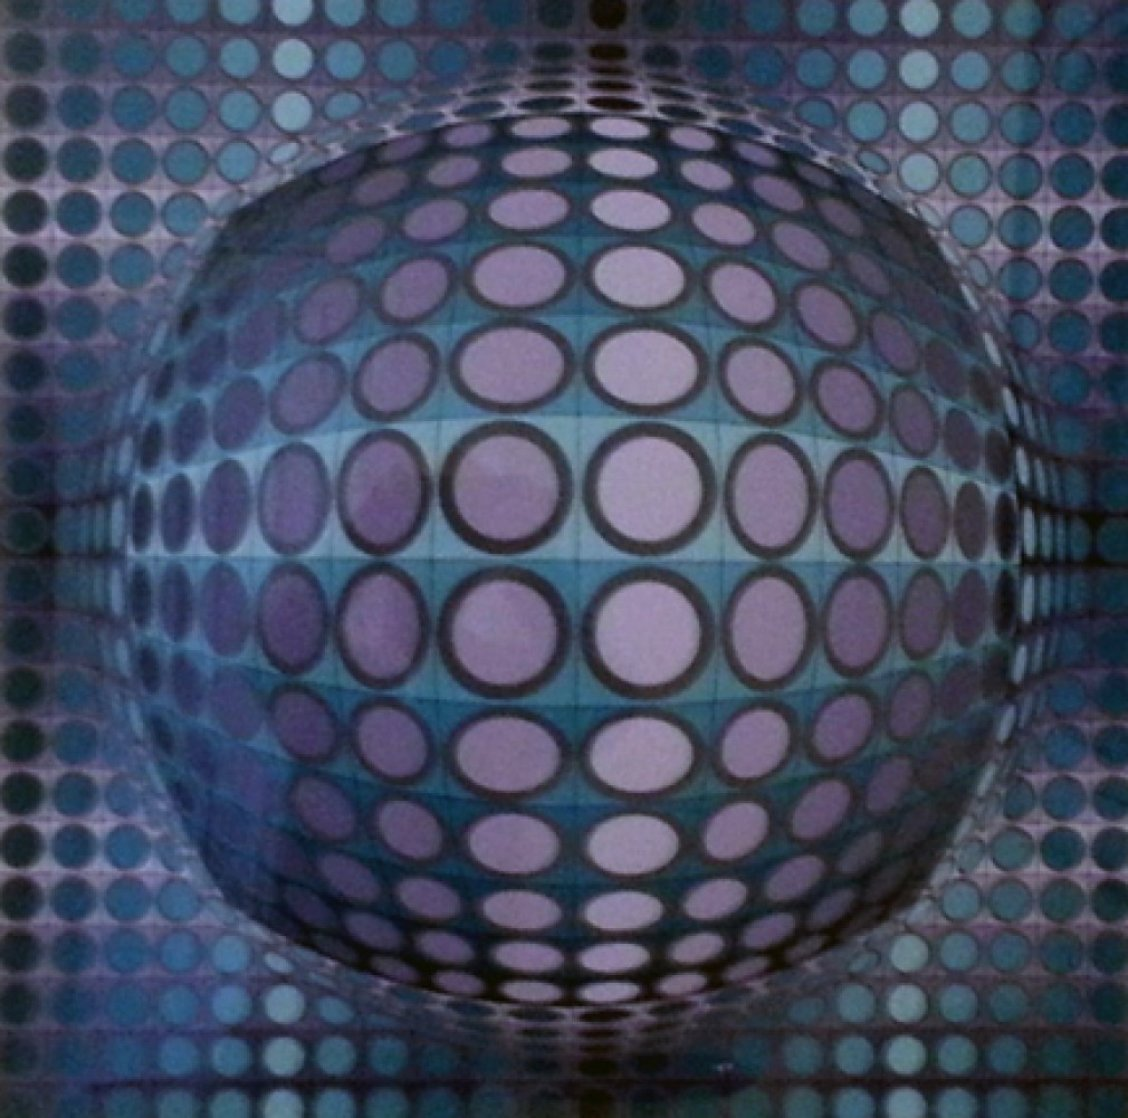 Viva 1979 AP Limited Edition Print by Victor Vasarely